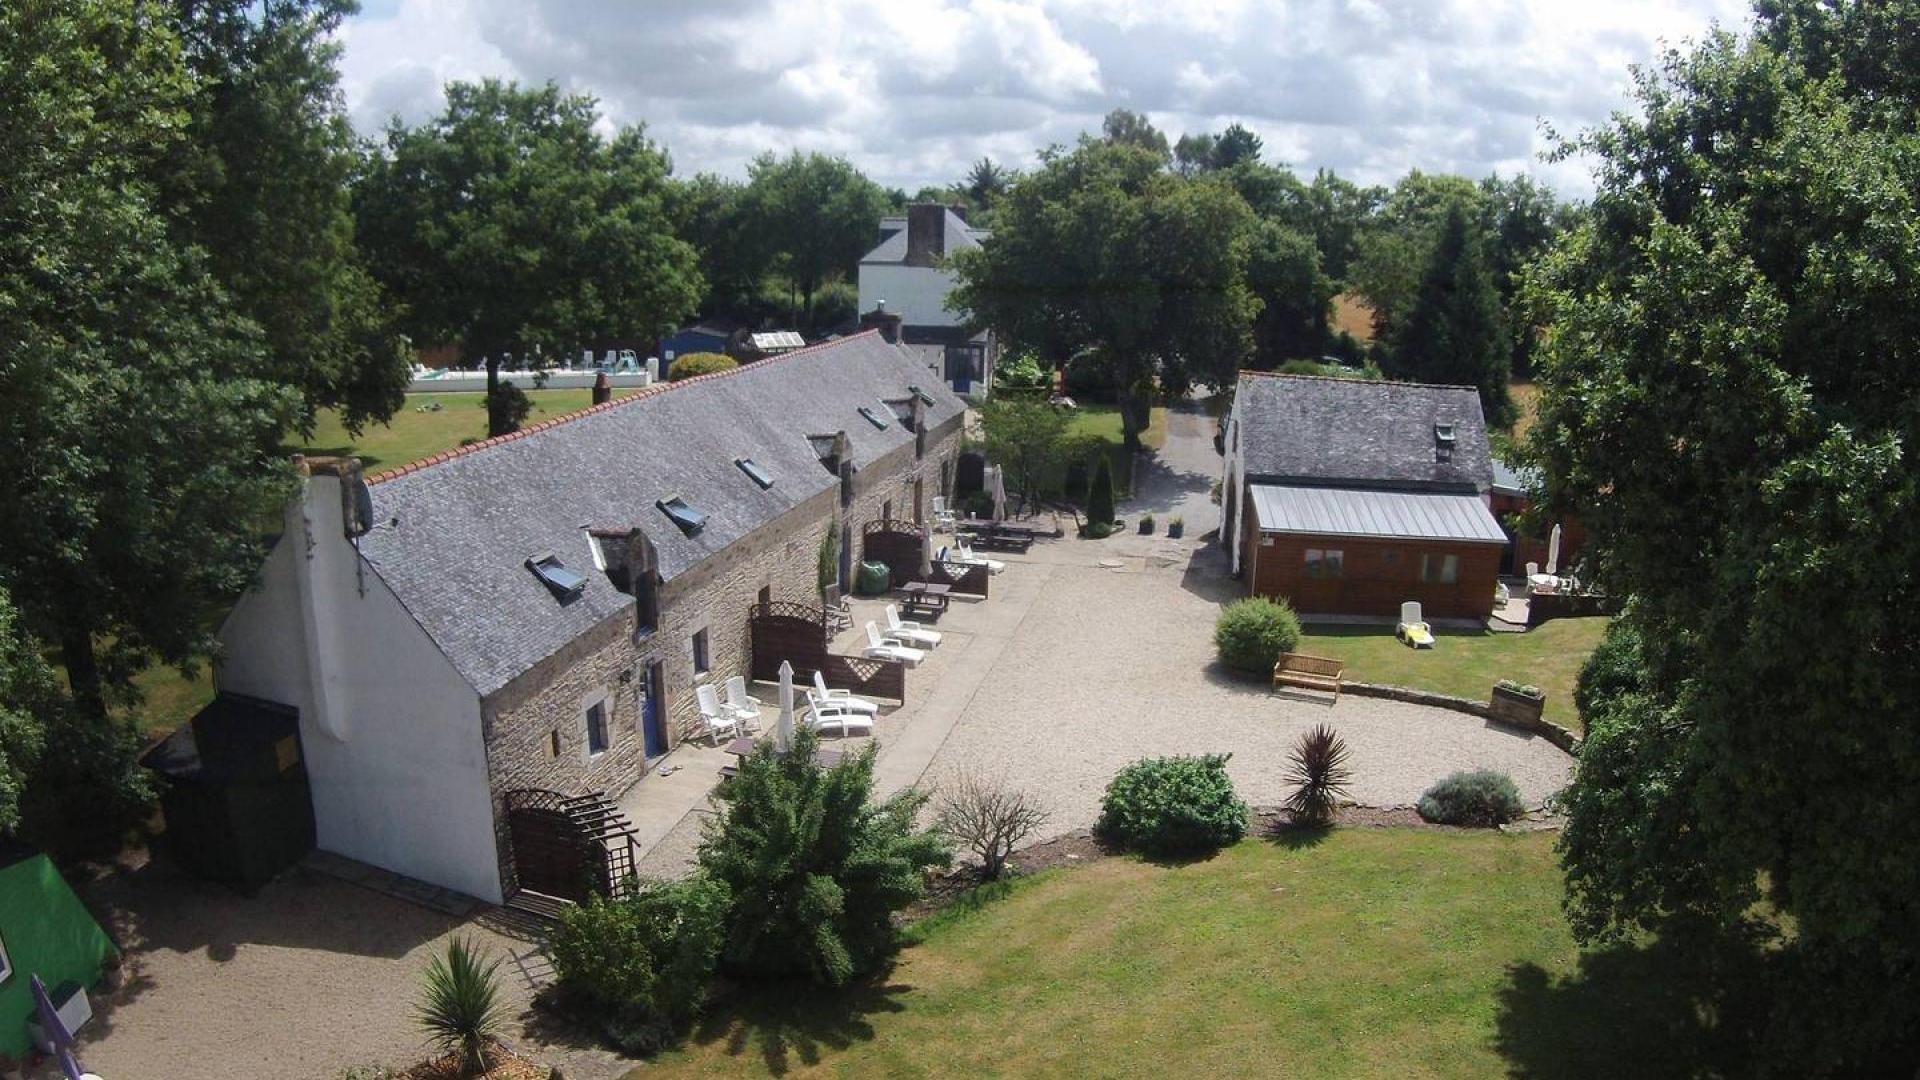 2 bedroom toddler-friendly holiday cottage Brittany – JAOR